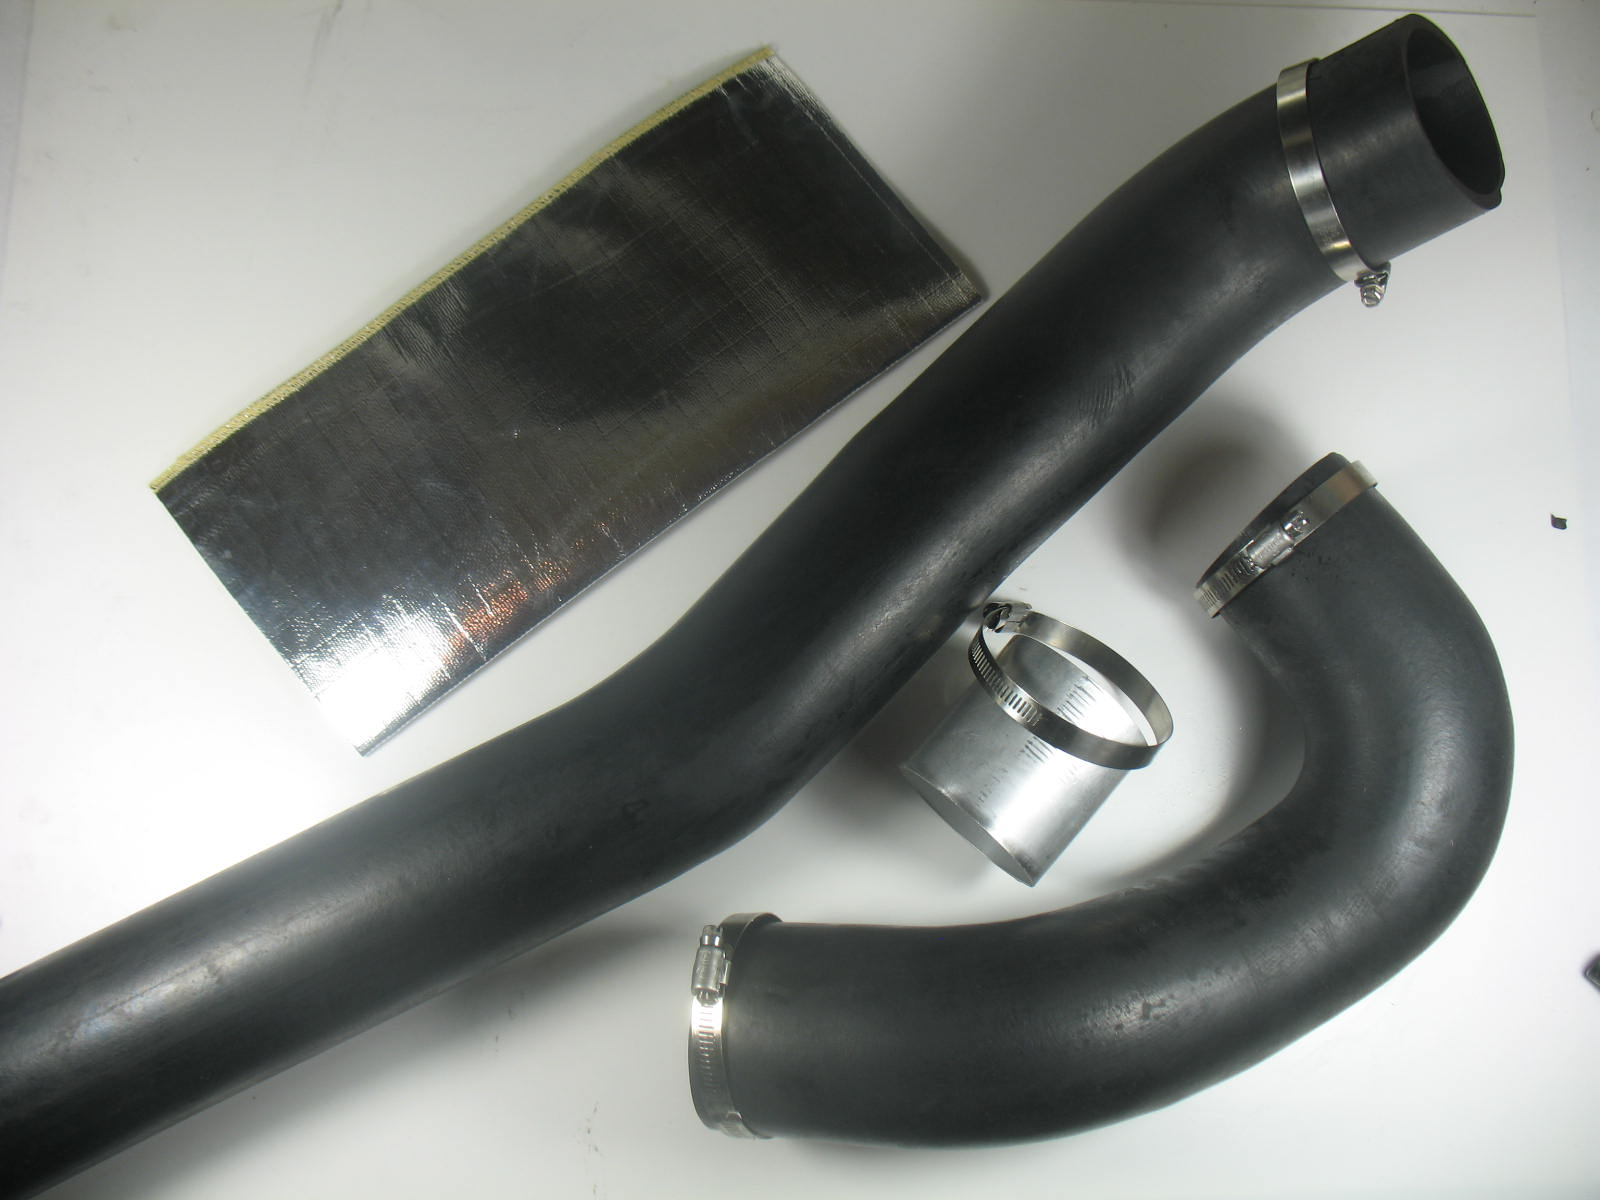 tvr griffith hose kit tvr parts ltd part details tvr hk003a bk hose kit silicone tvr parts ltd. Black Bedroom Furniture Sets. Home Design Ideas